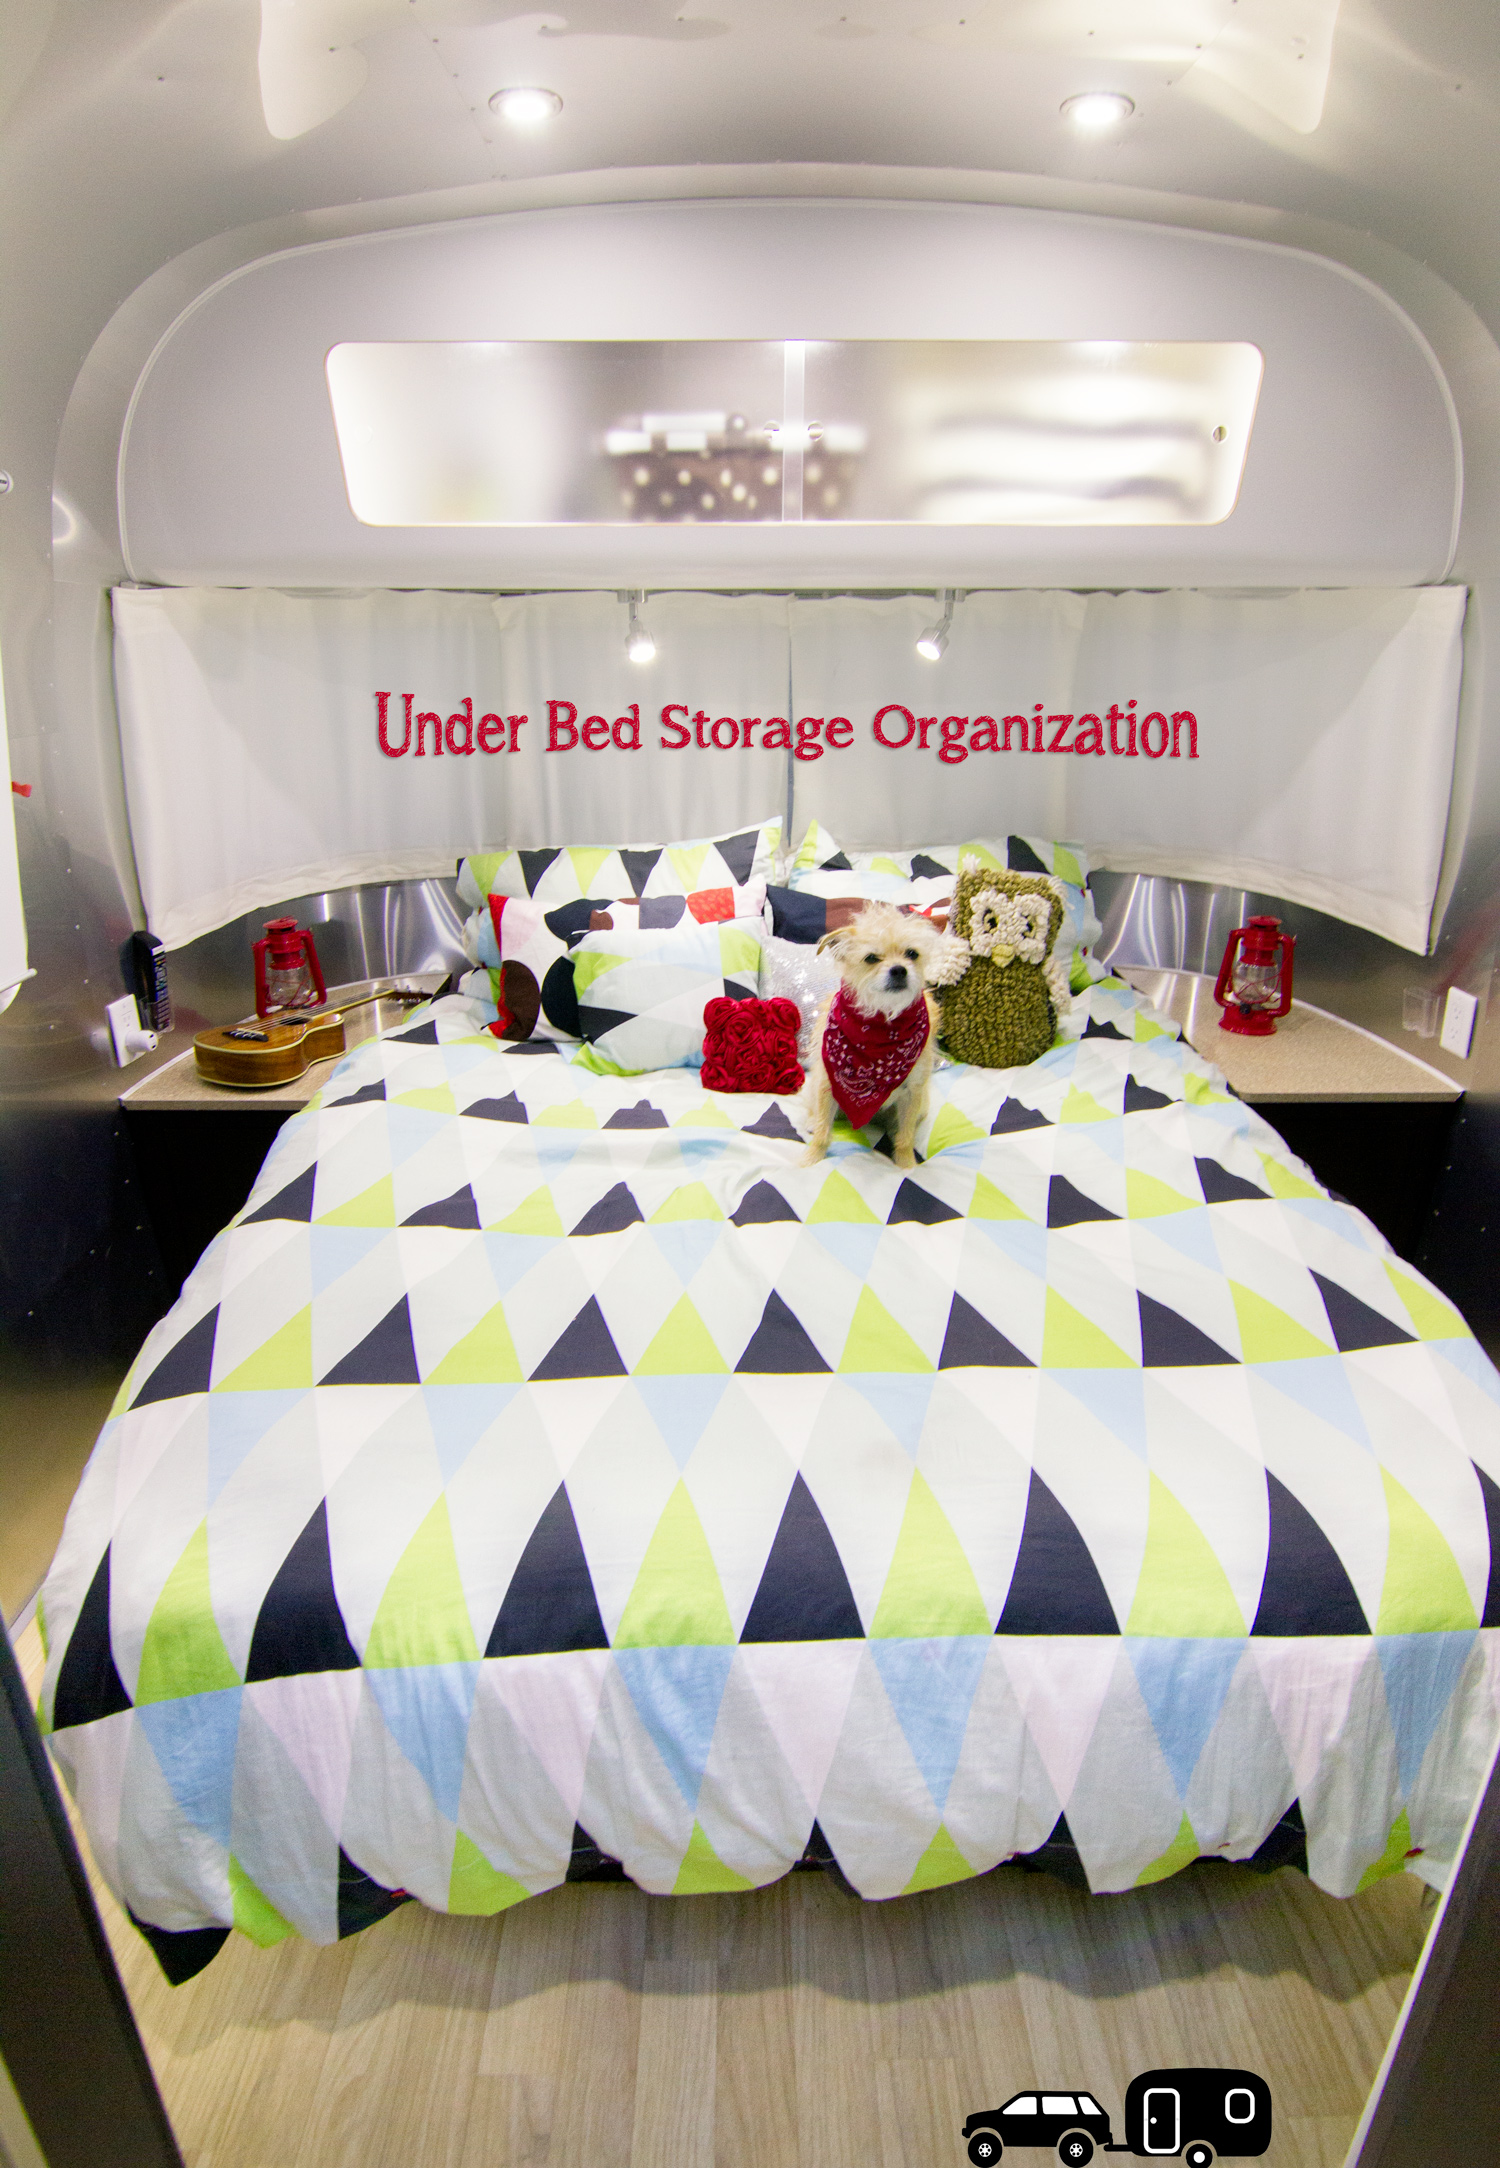 Under Bed Storage Organization On The Airstream Via J5mm Rv Lifestyle